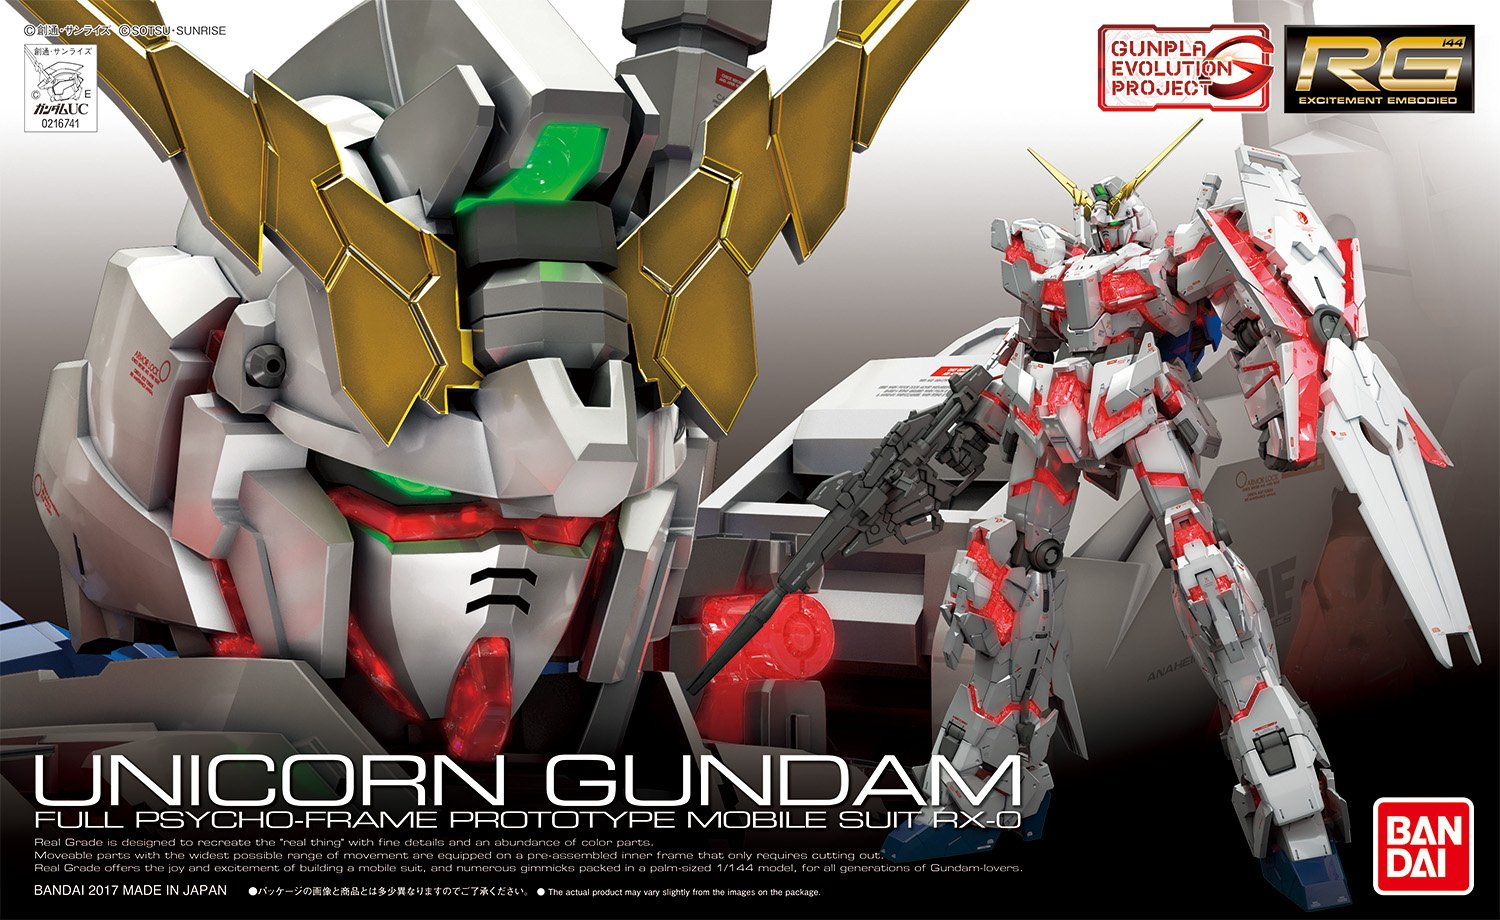 RG 1/144 Unicorn Gundam Box Art